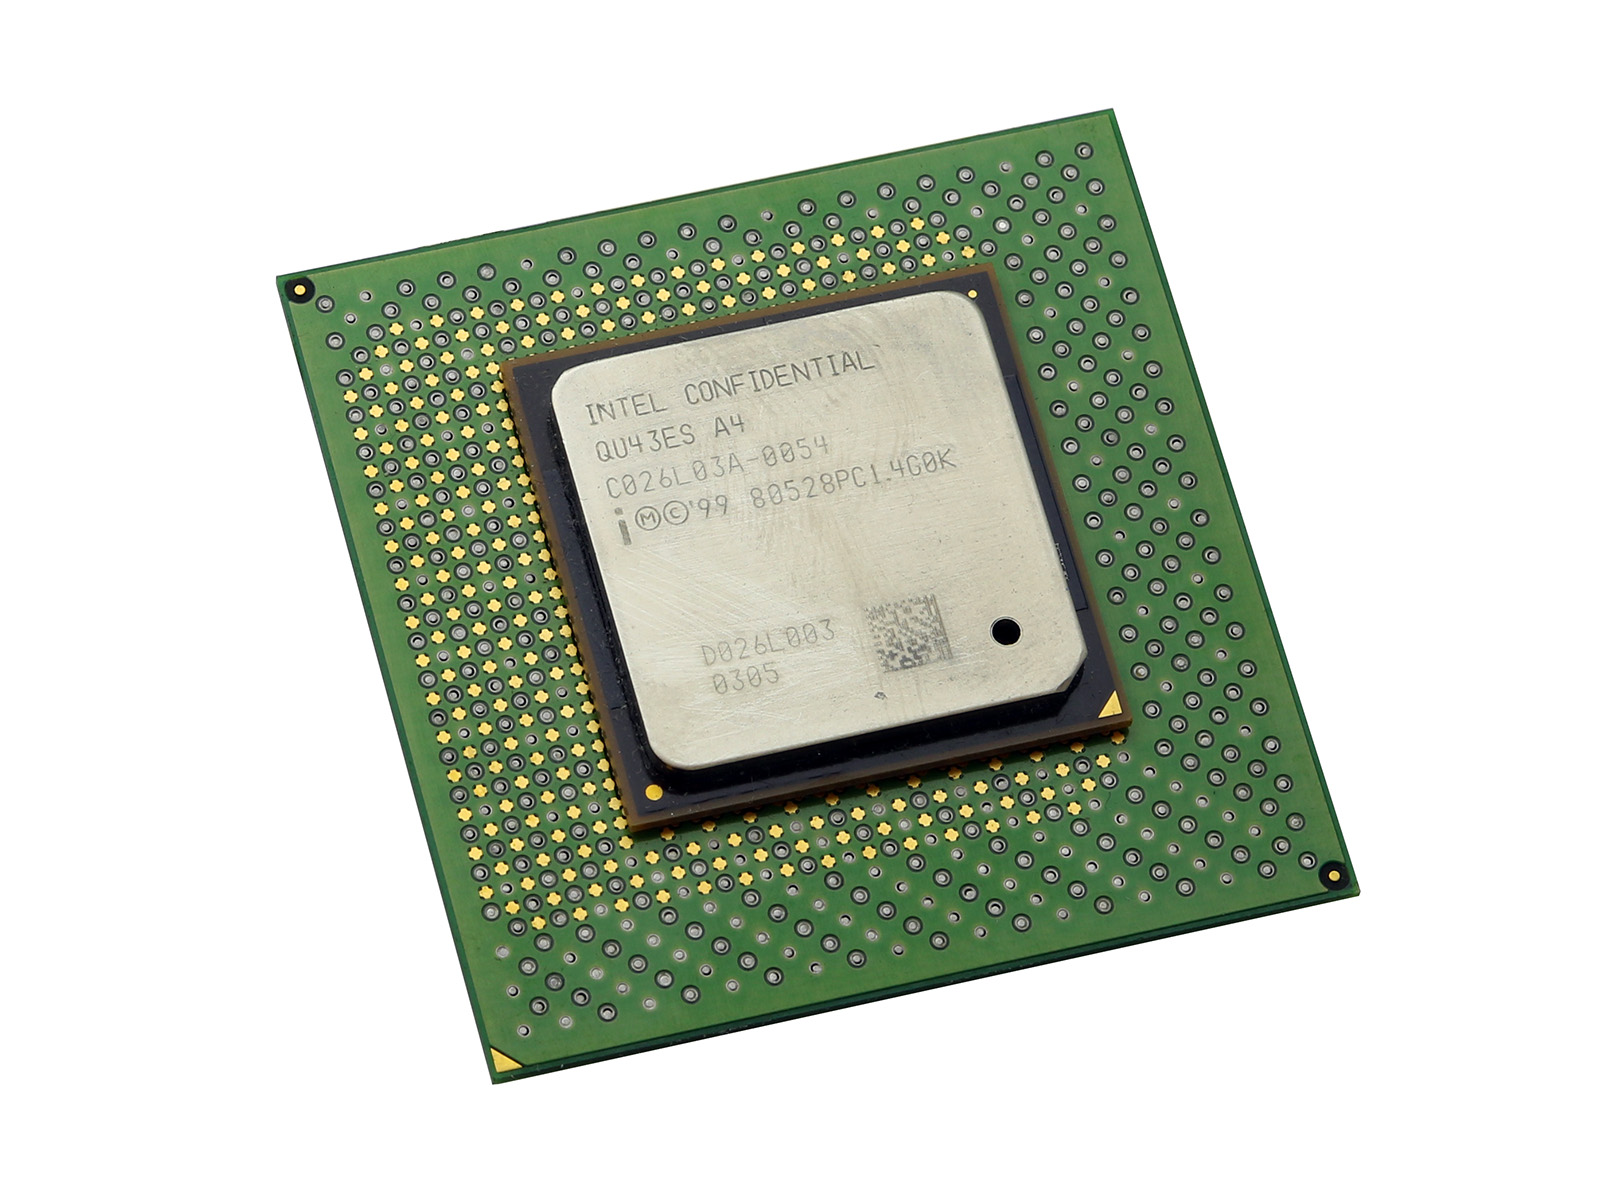 pentium 4 Find great deals on ebay for pentium 4 computer in pc desktops and all-in-ones shop with confidence.